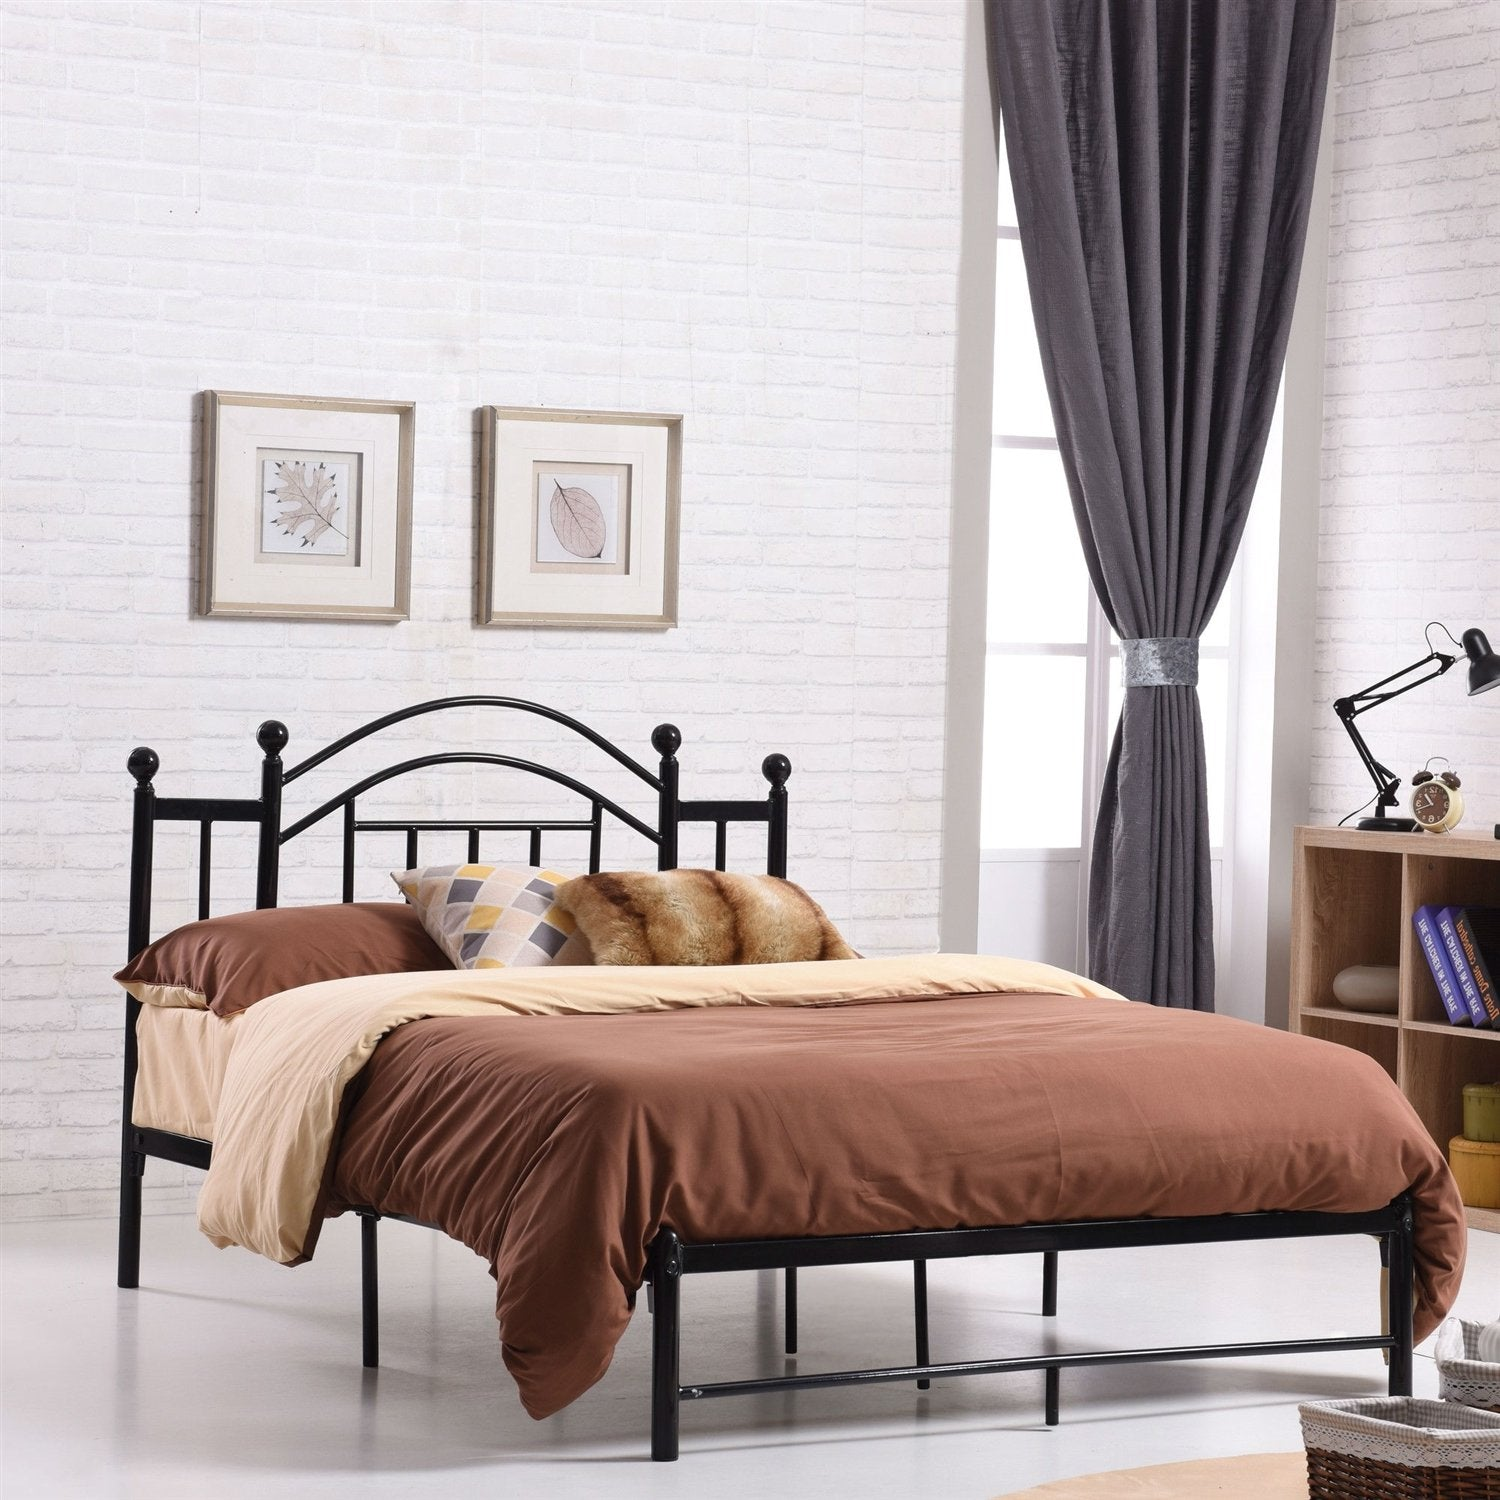 Queen size Black Metal Platform Bed Frame with Arch Style Headboard